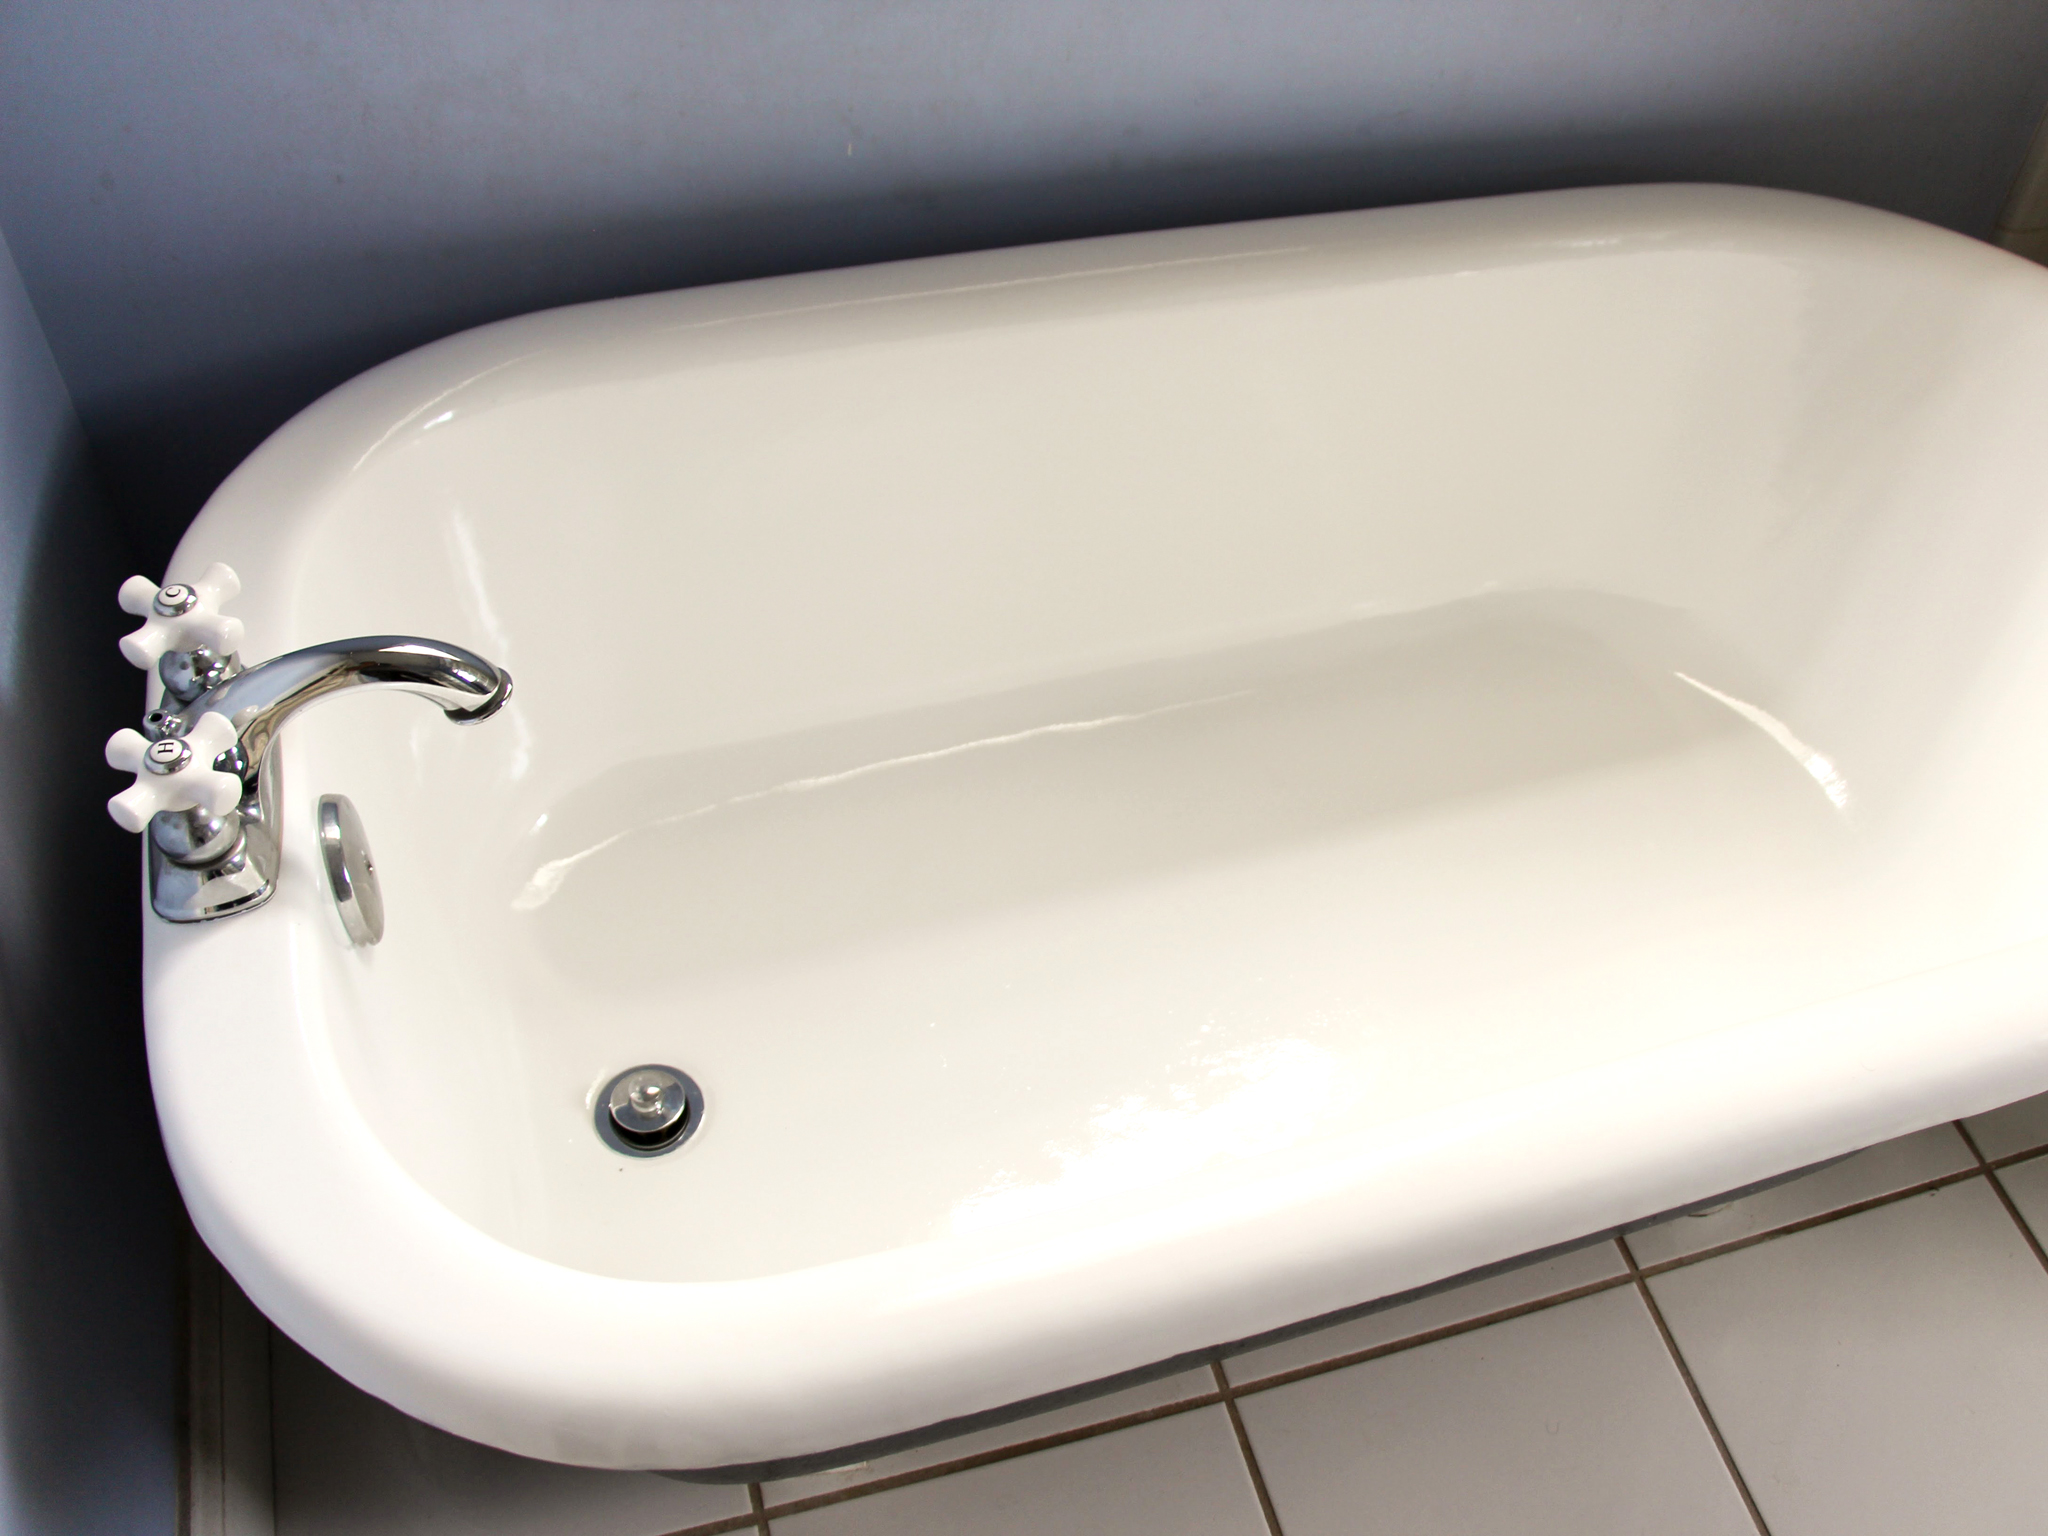 Cool Bathtub Refinishing Company Huge Bathroom Refinishers Clean Bathtub Repair Refinishing Old Surface Refinishing PurpleTub Reglazing Cost How To Refinish A Bathtub | How Tos | DIY